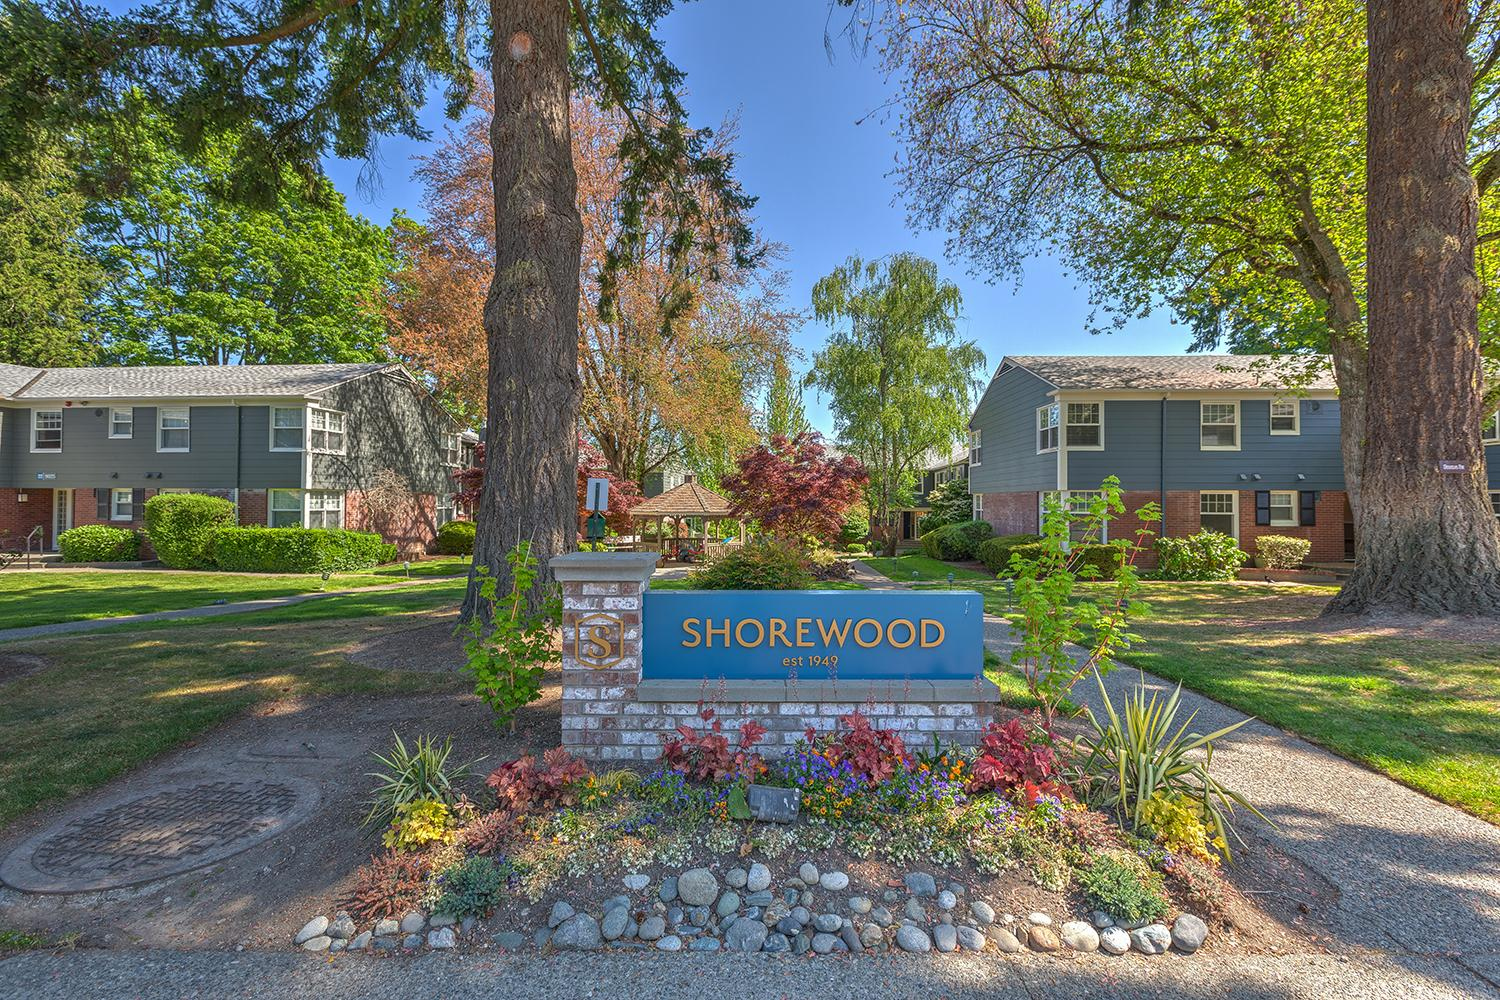 The Shorewood Apartments on Mercer Island have been a staple of the community since their opening in 1949. The complex has been everything from Mercer Island City Hall, to Barack Obama's mother's residence, to Bill Muncey's (hydroplane racer) convenience store. The property includes 645 units, 41 buildings, and is the largest multifamily community on the Island. If you're from Mercer Island, you know someone you at one point lived in Shorewood. Now, they're getting the restoration they deserve! Check out the Before and After photos in this gallery, and find out more info at www.ShorewoodMercerIsland.com. (Image: Mark Davis / Hero Creative)